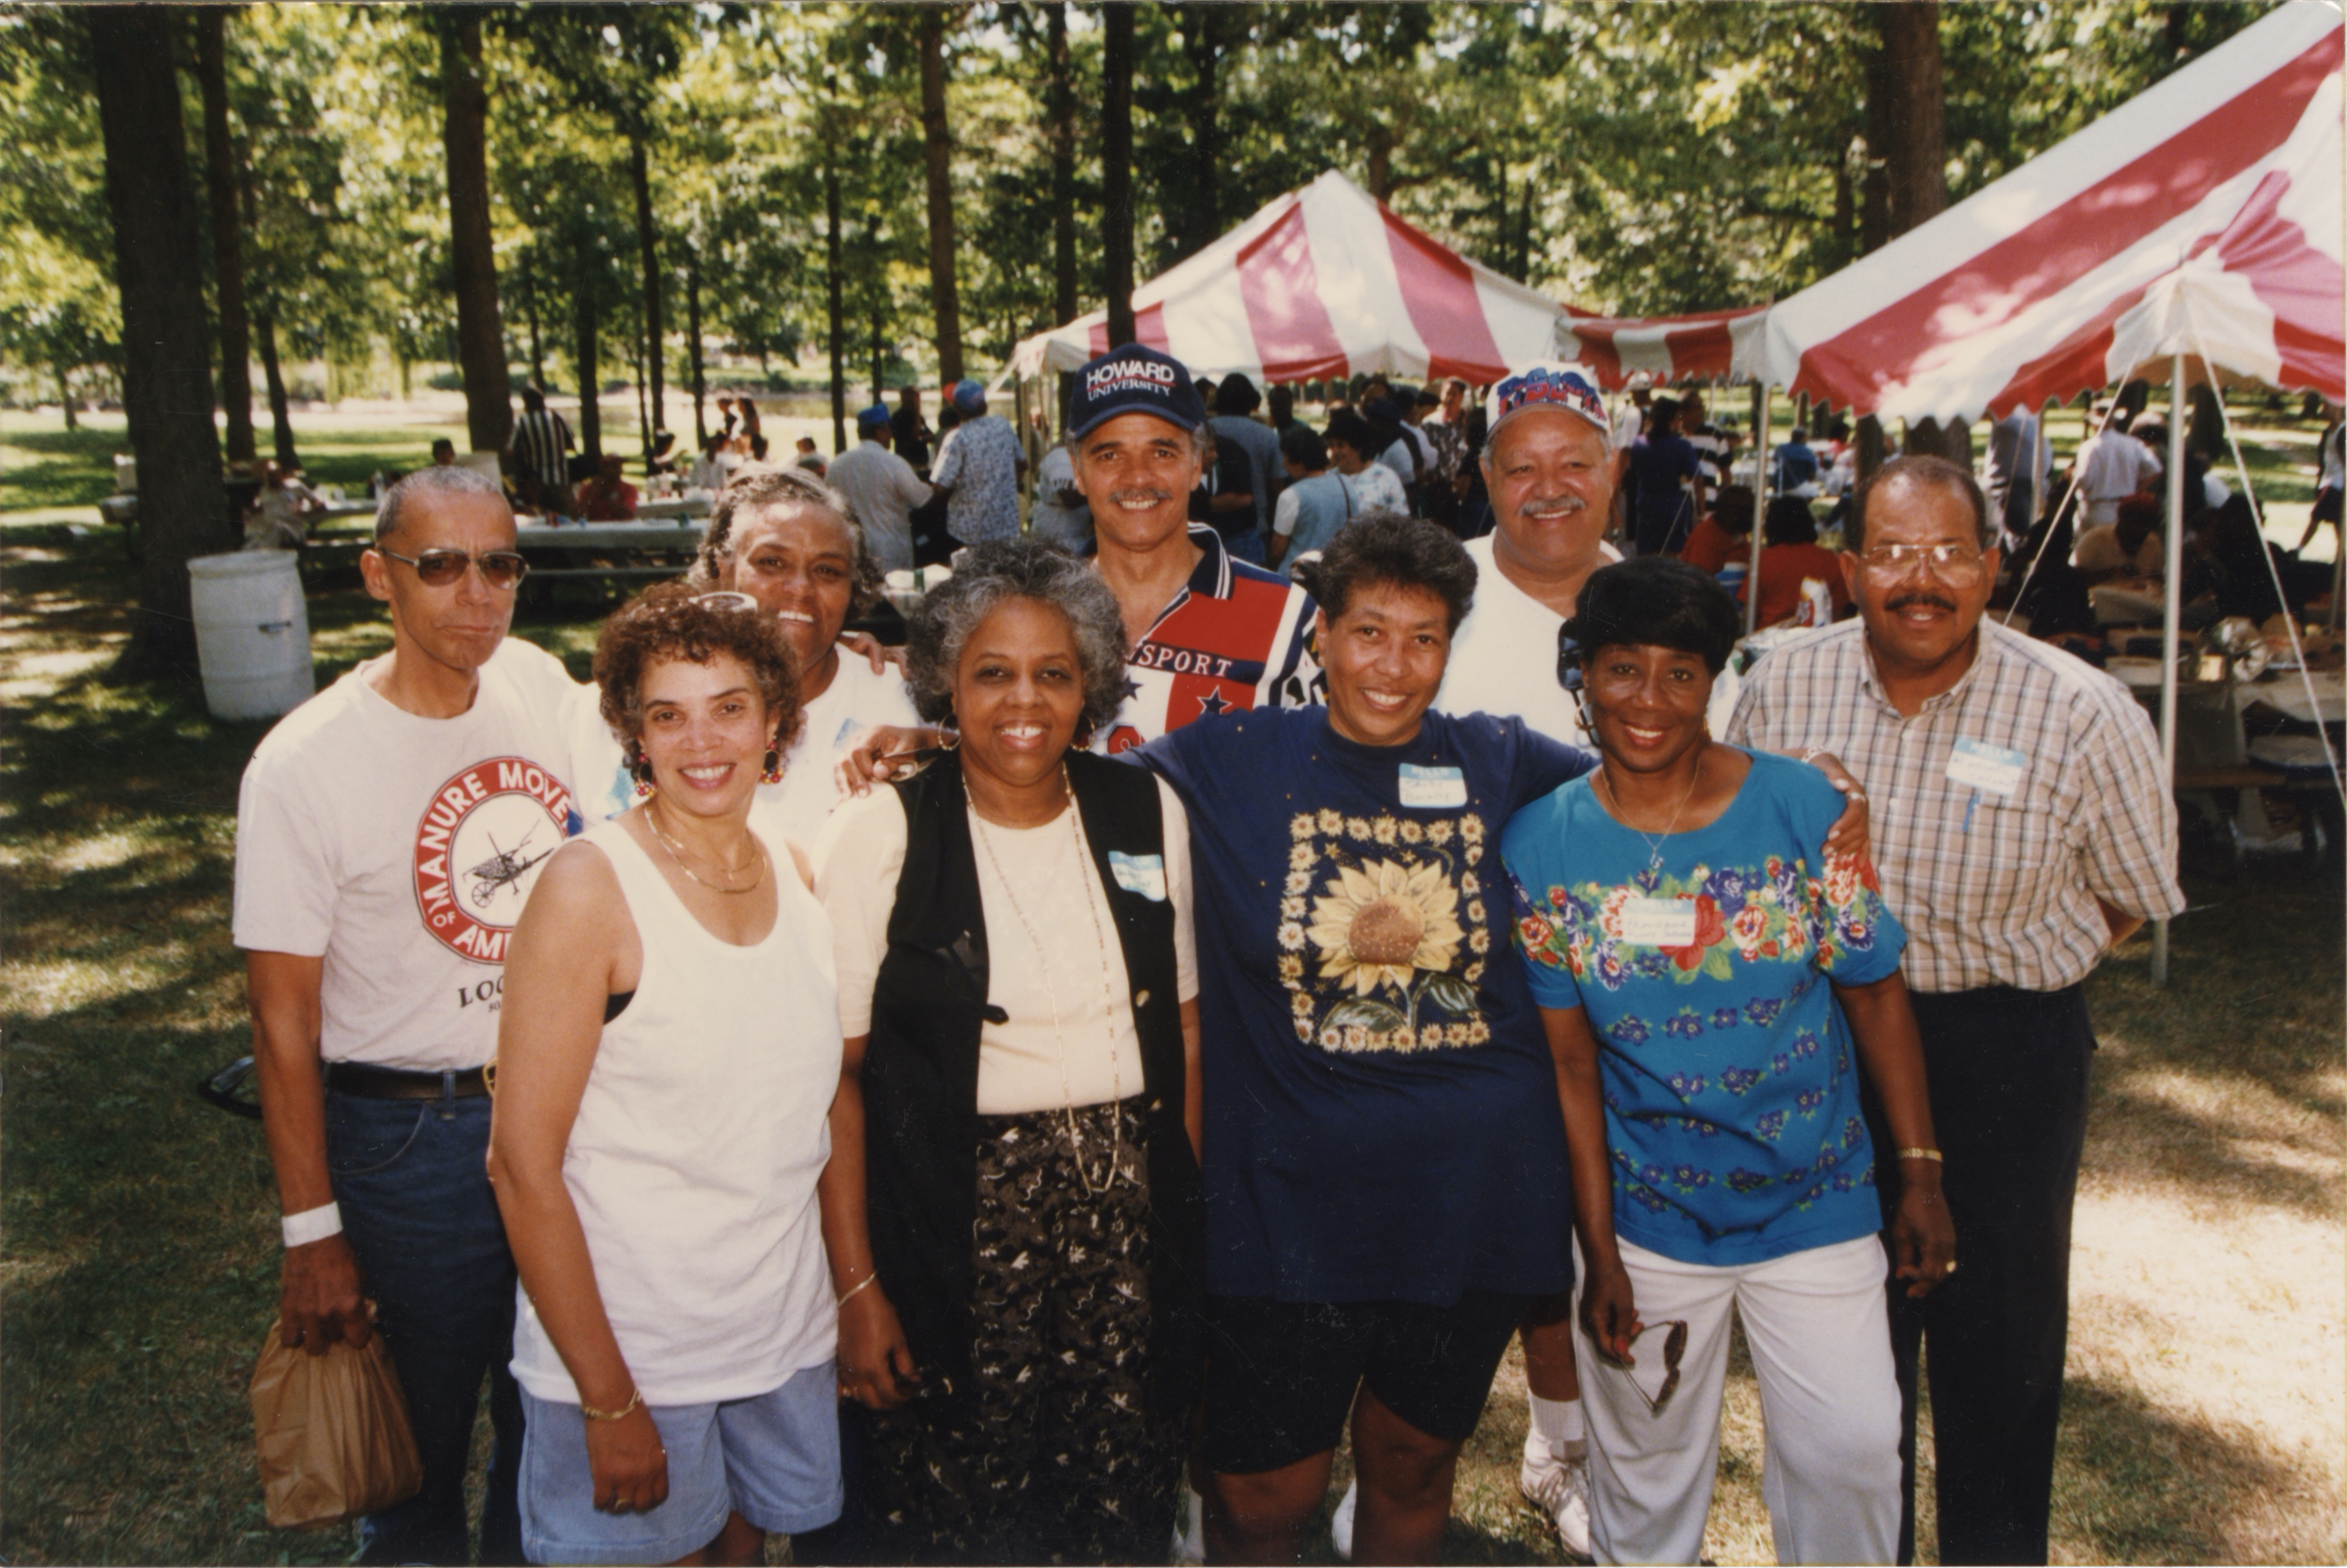 Organizers of Ann Arbor's Old Neighborhood Picnic image